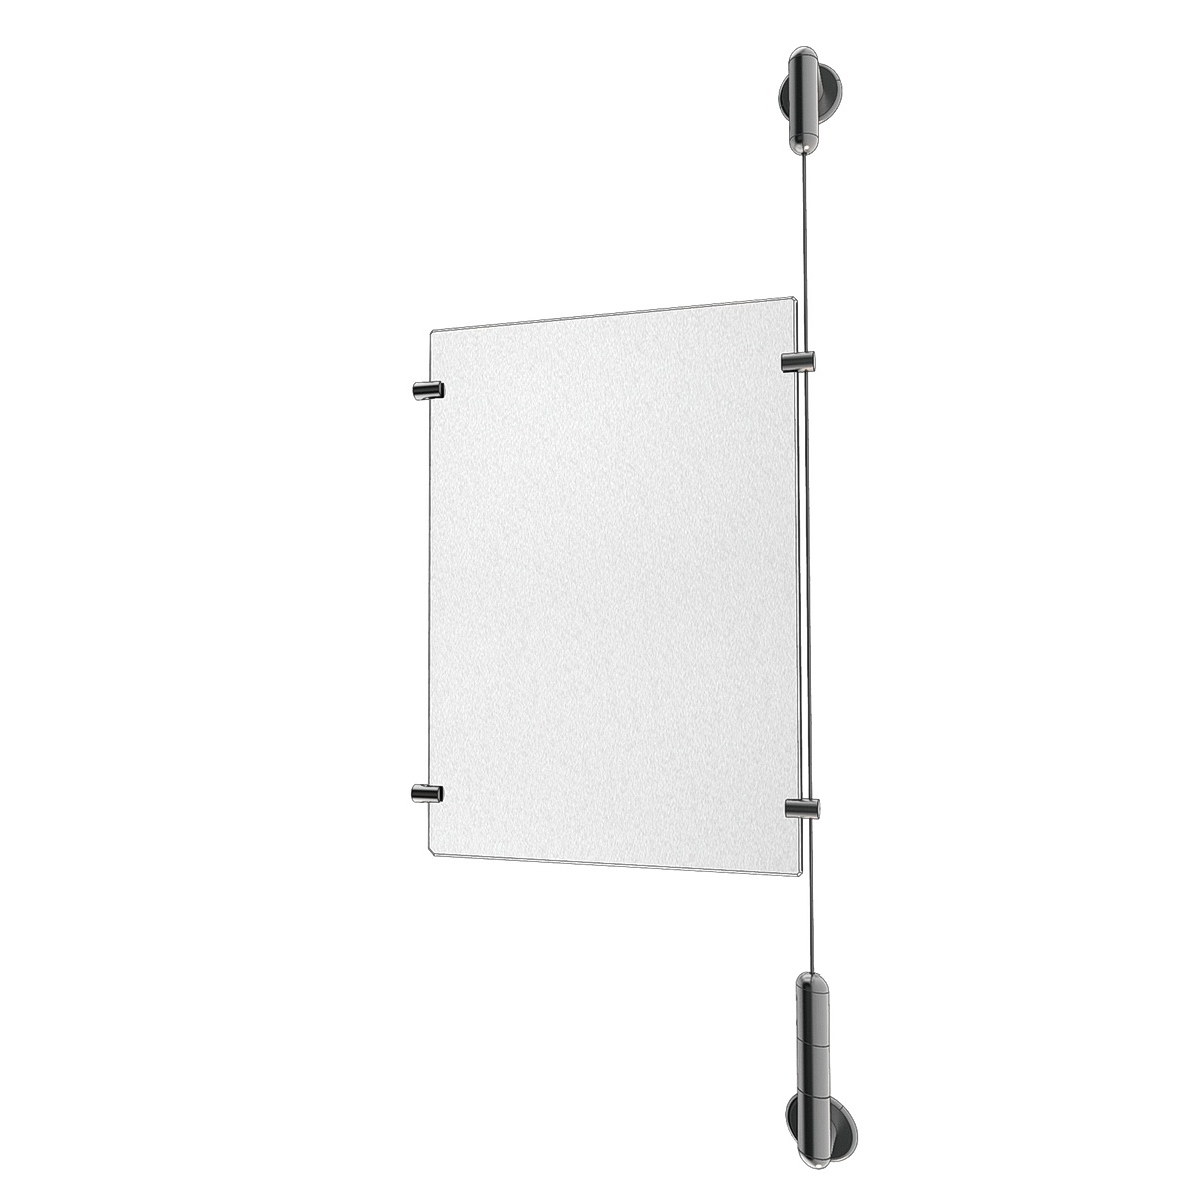 Clear Acrylic Sign Holder Extension Kit for Media 1 x 8.5'' x 11''